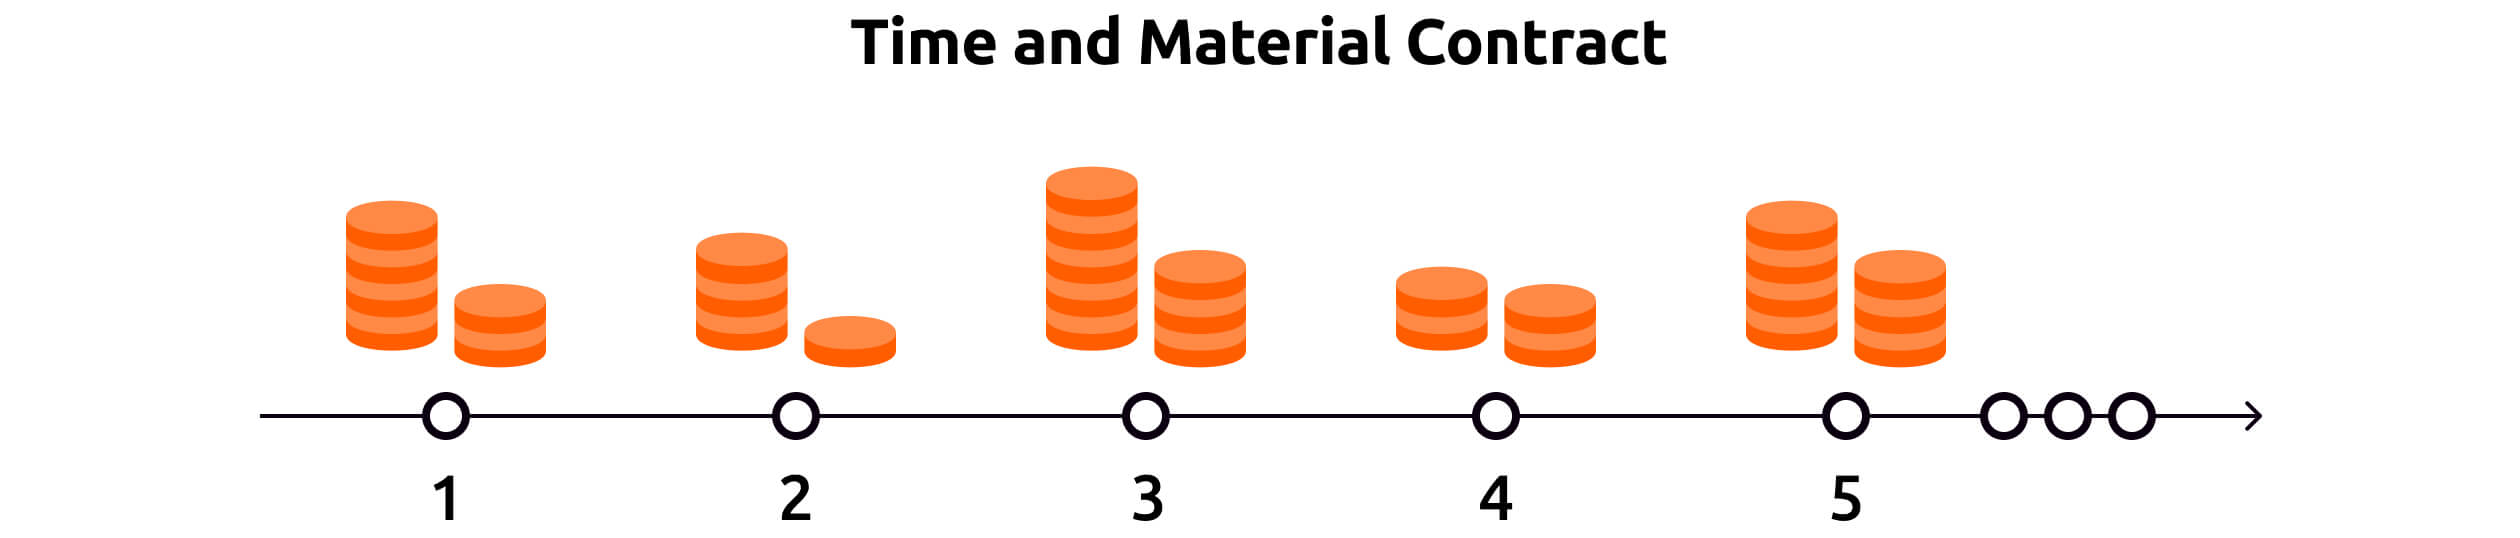 Payment for Time and Materials contract per month